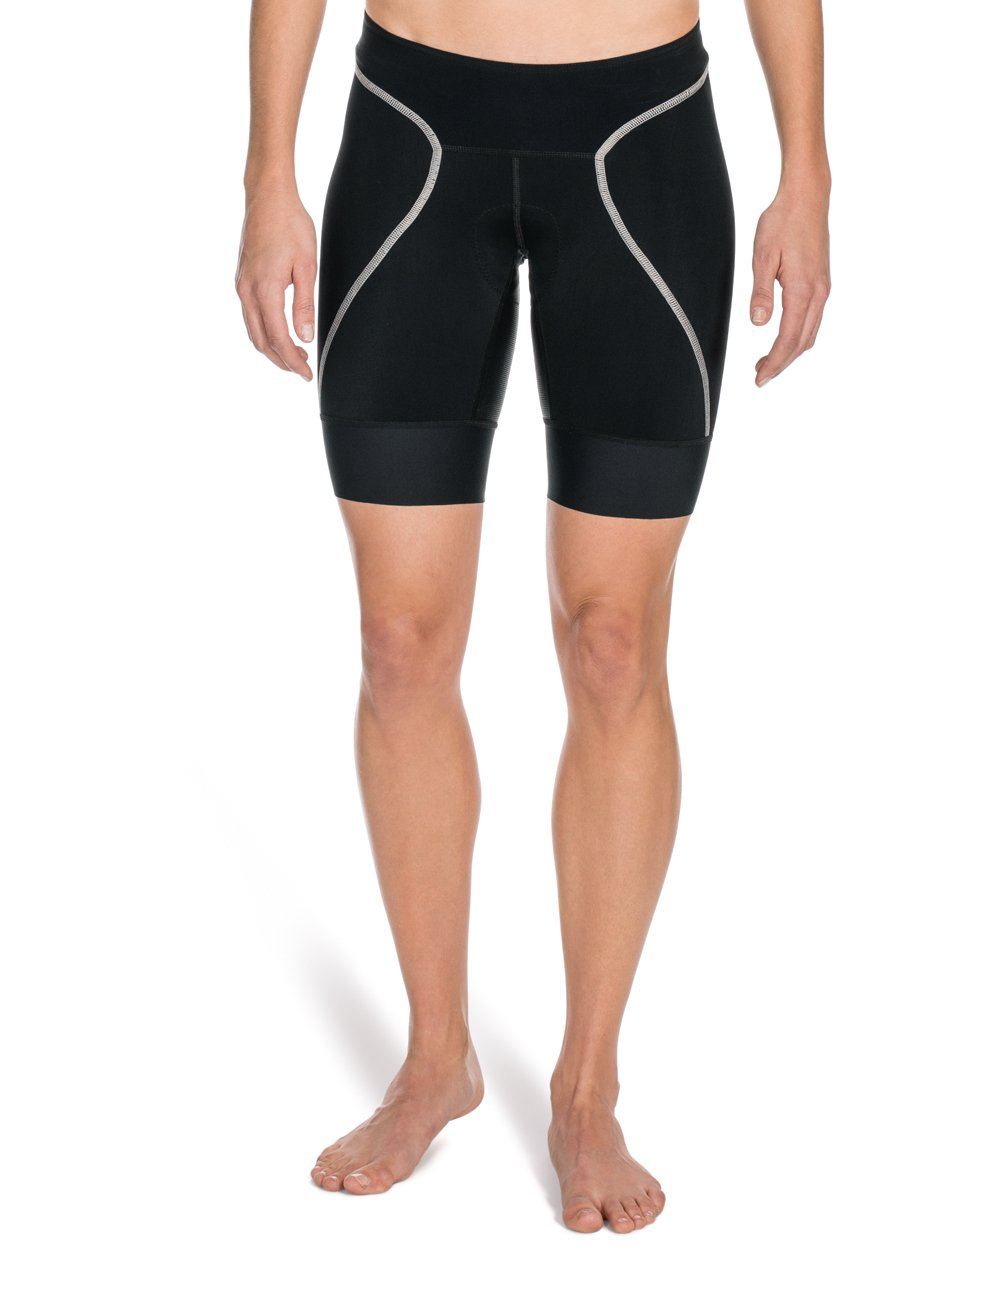 SKINS Women's Cycle Shorts, Black, X-Small